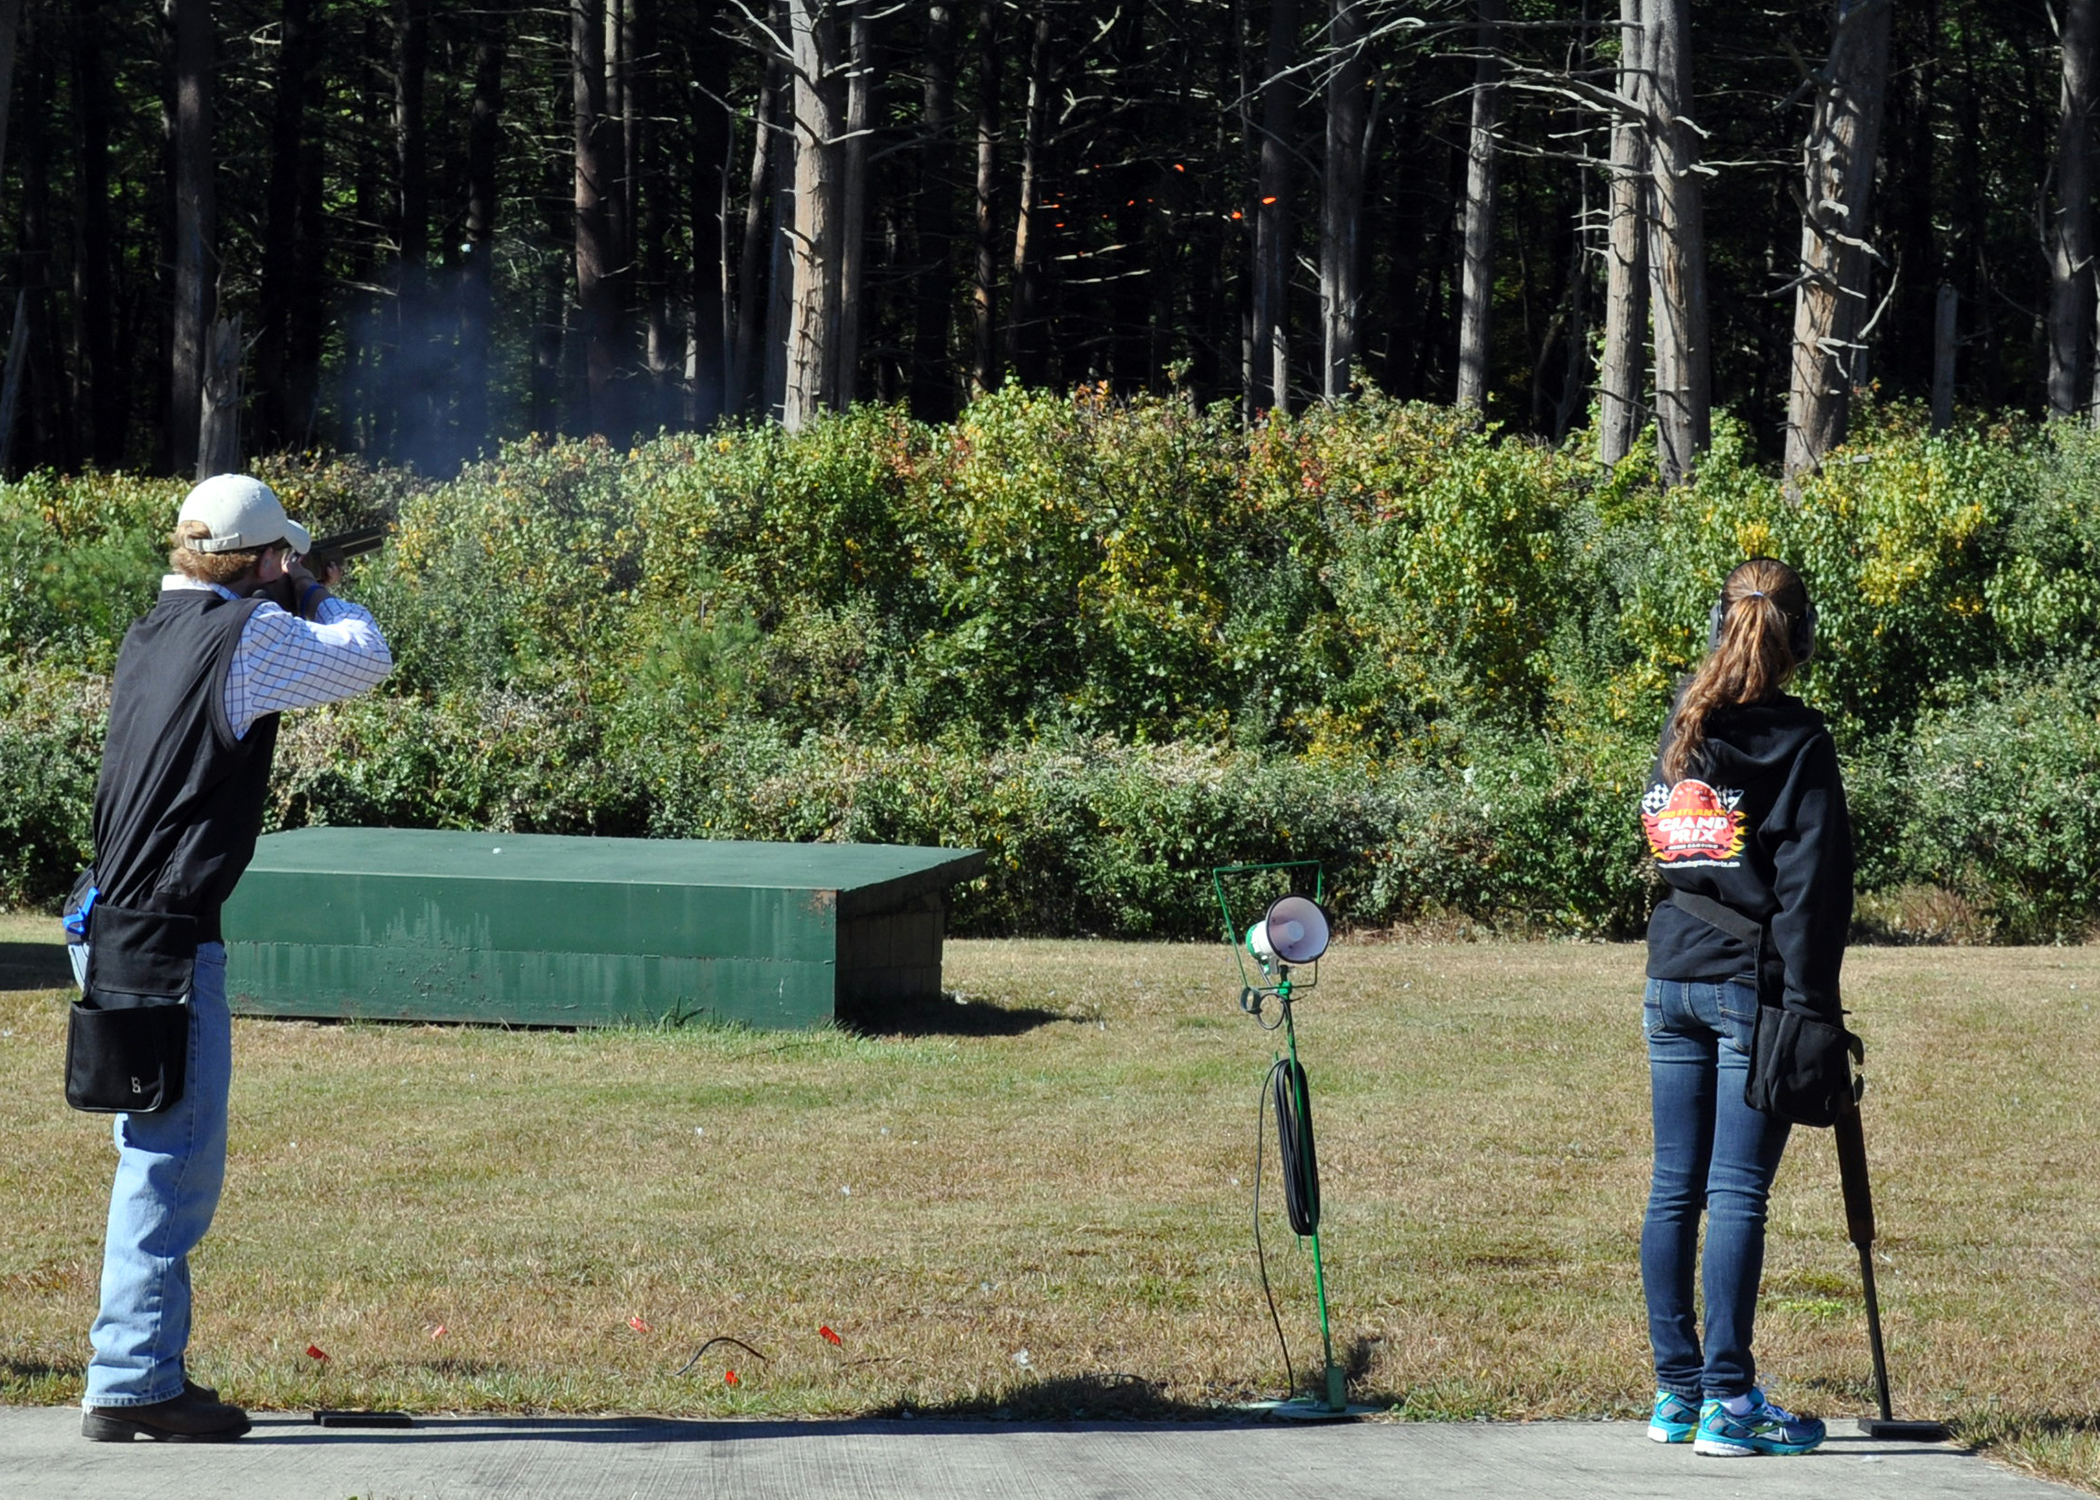 A student shoots while another looks on